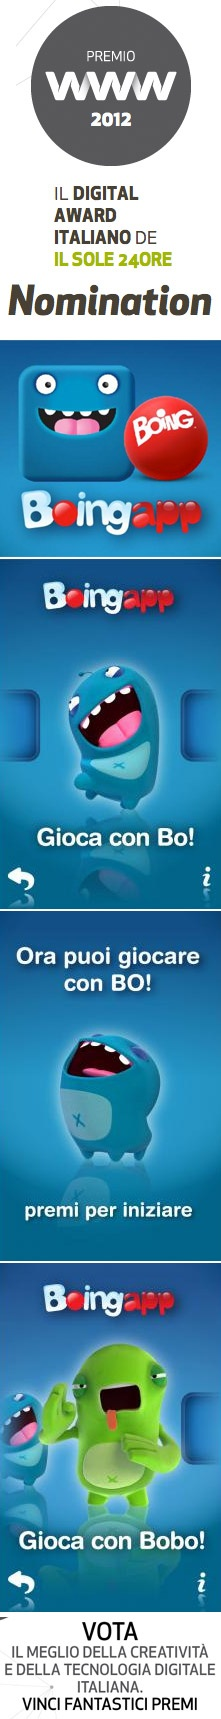 "BoingApp in nomination al premio WWW del Sole 24 Ore nella categoria ""Mobile and Tablet application / games"". Vota e fai votare!"